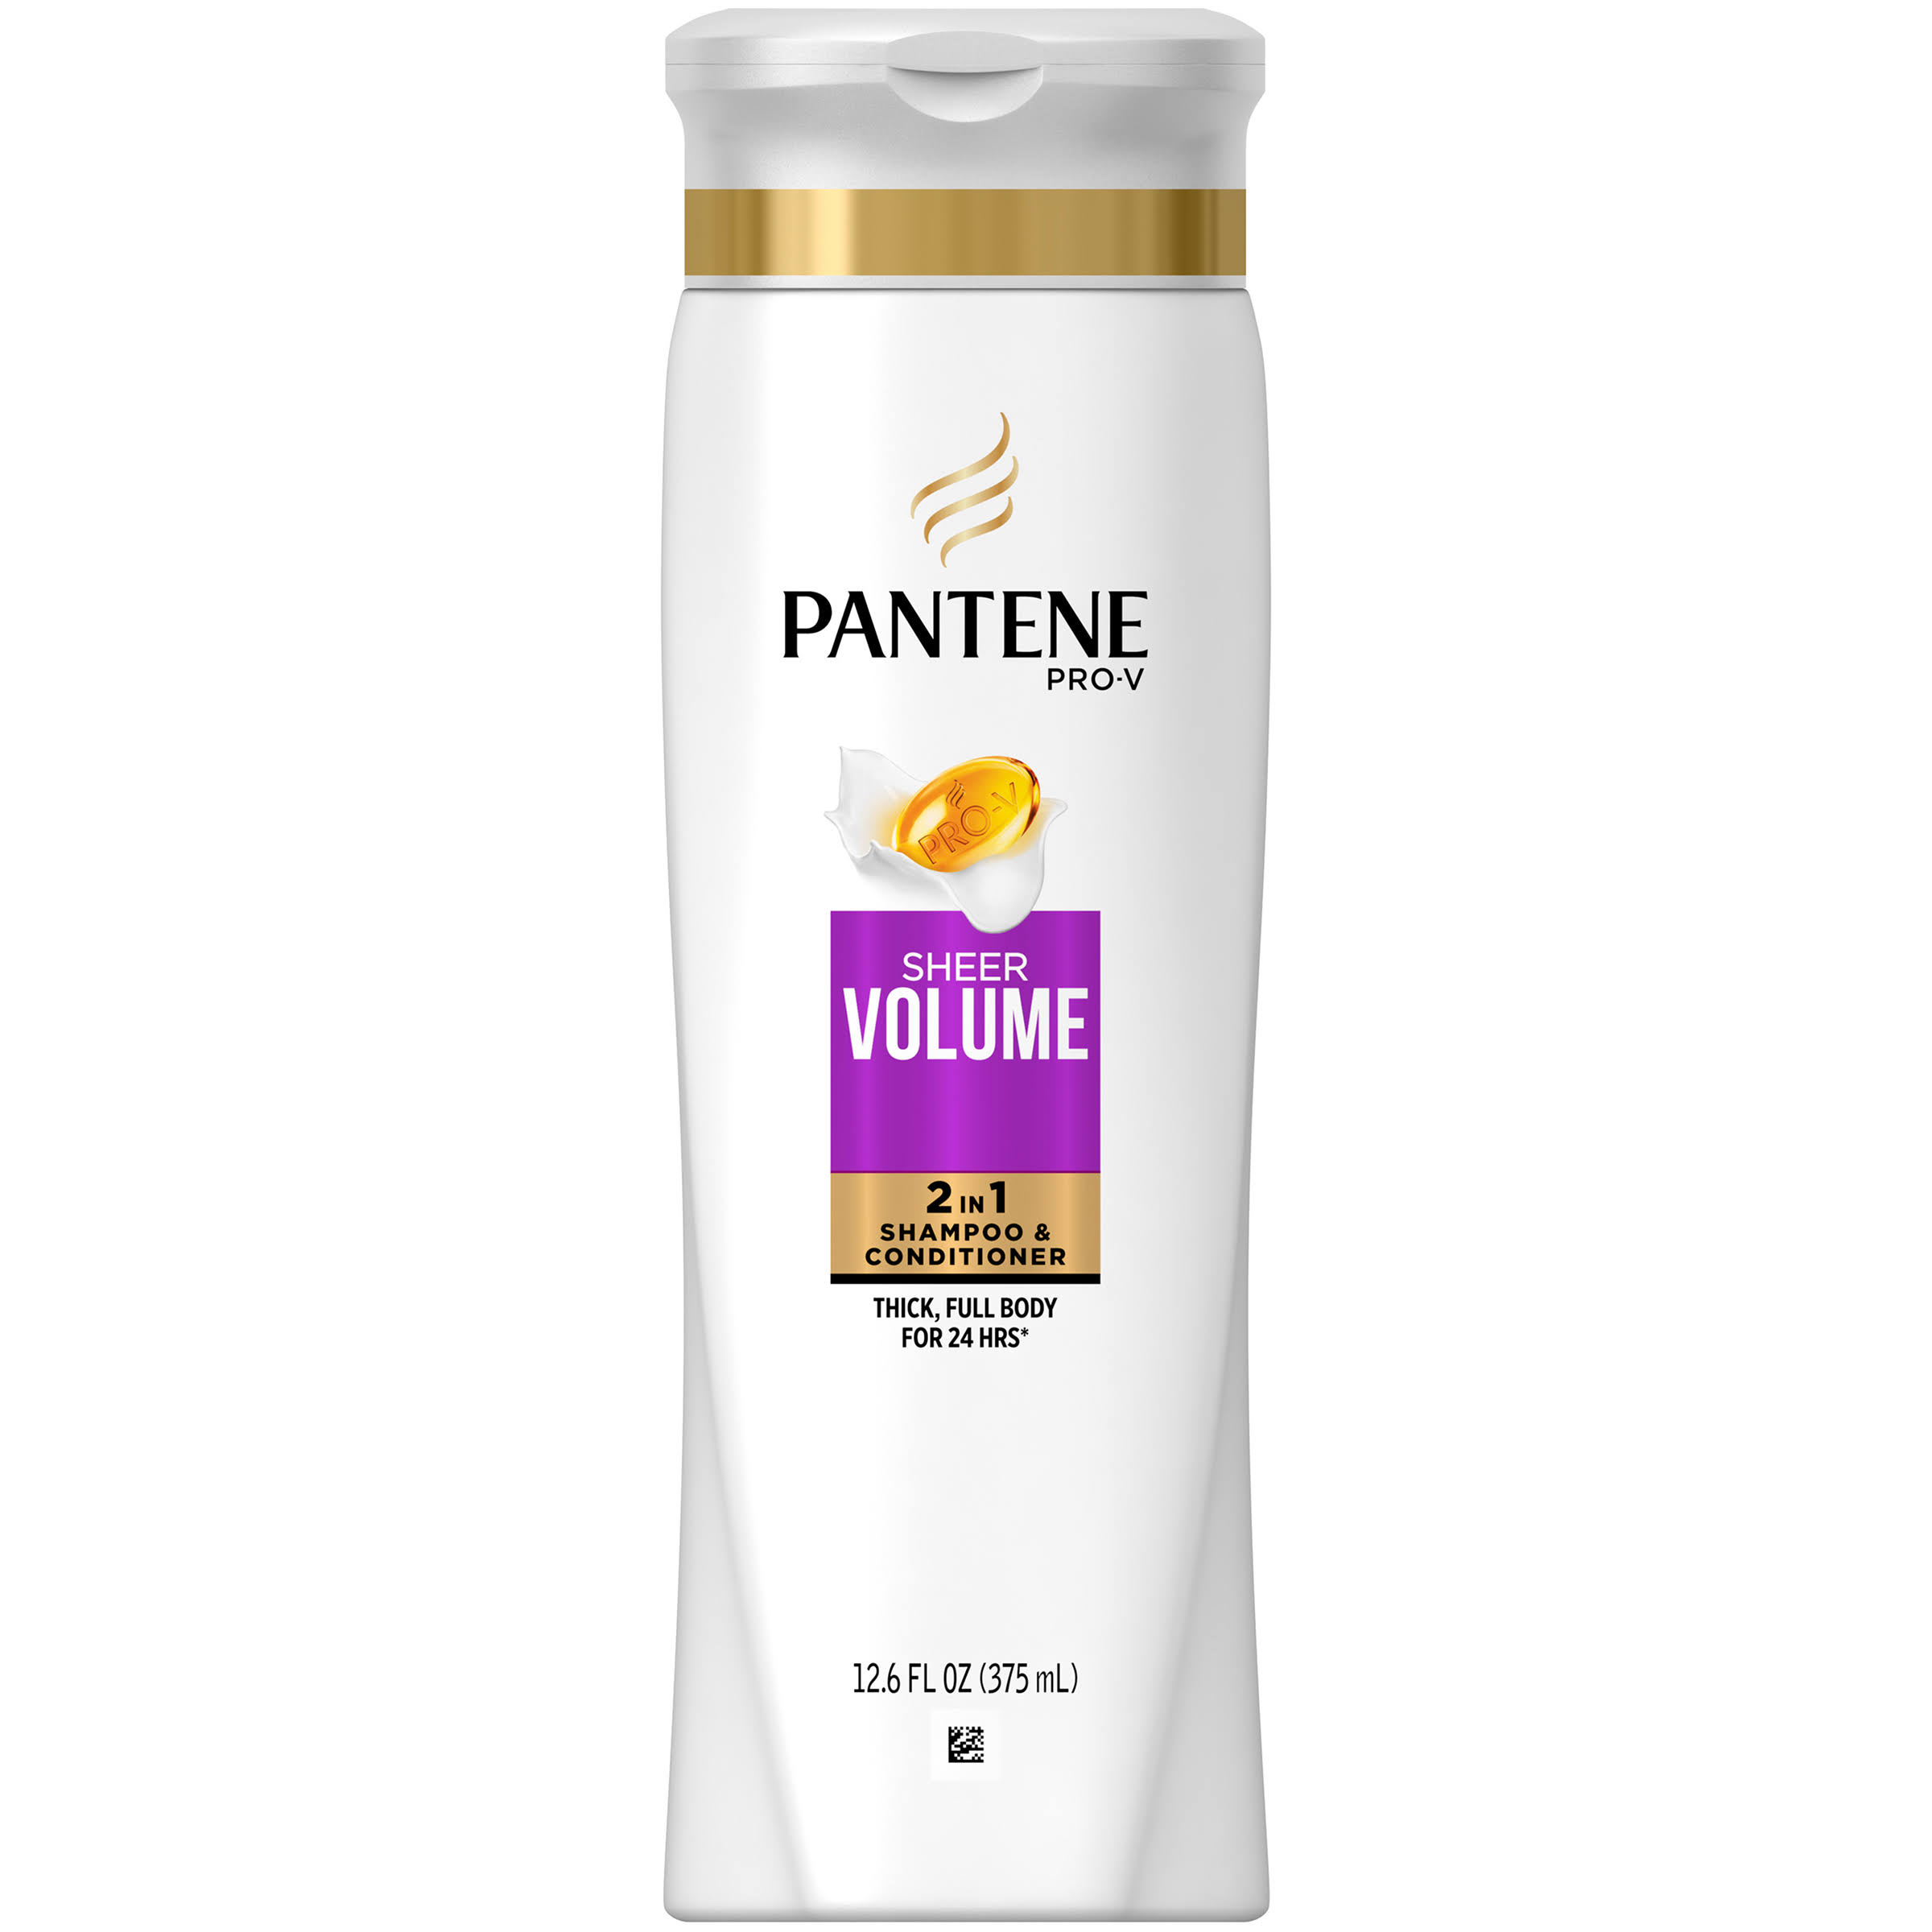 Pantene Pro-V Dreamcare Sheer Volume 2 in 1 Shampoo and Conditioner - 12.6oz